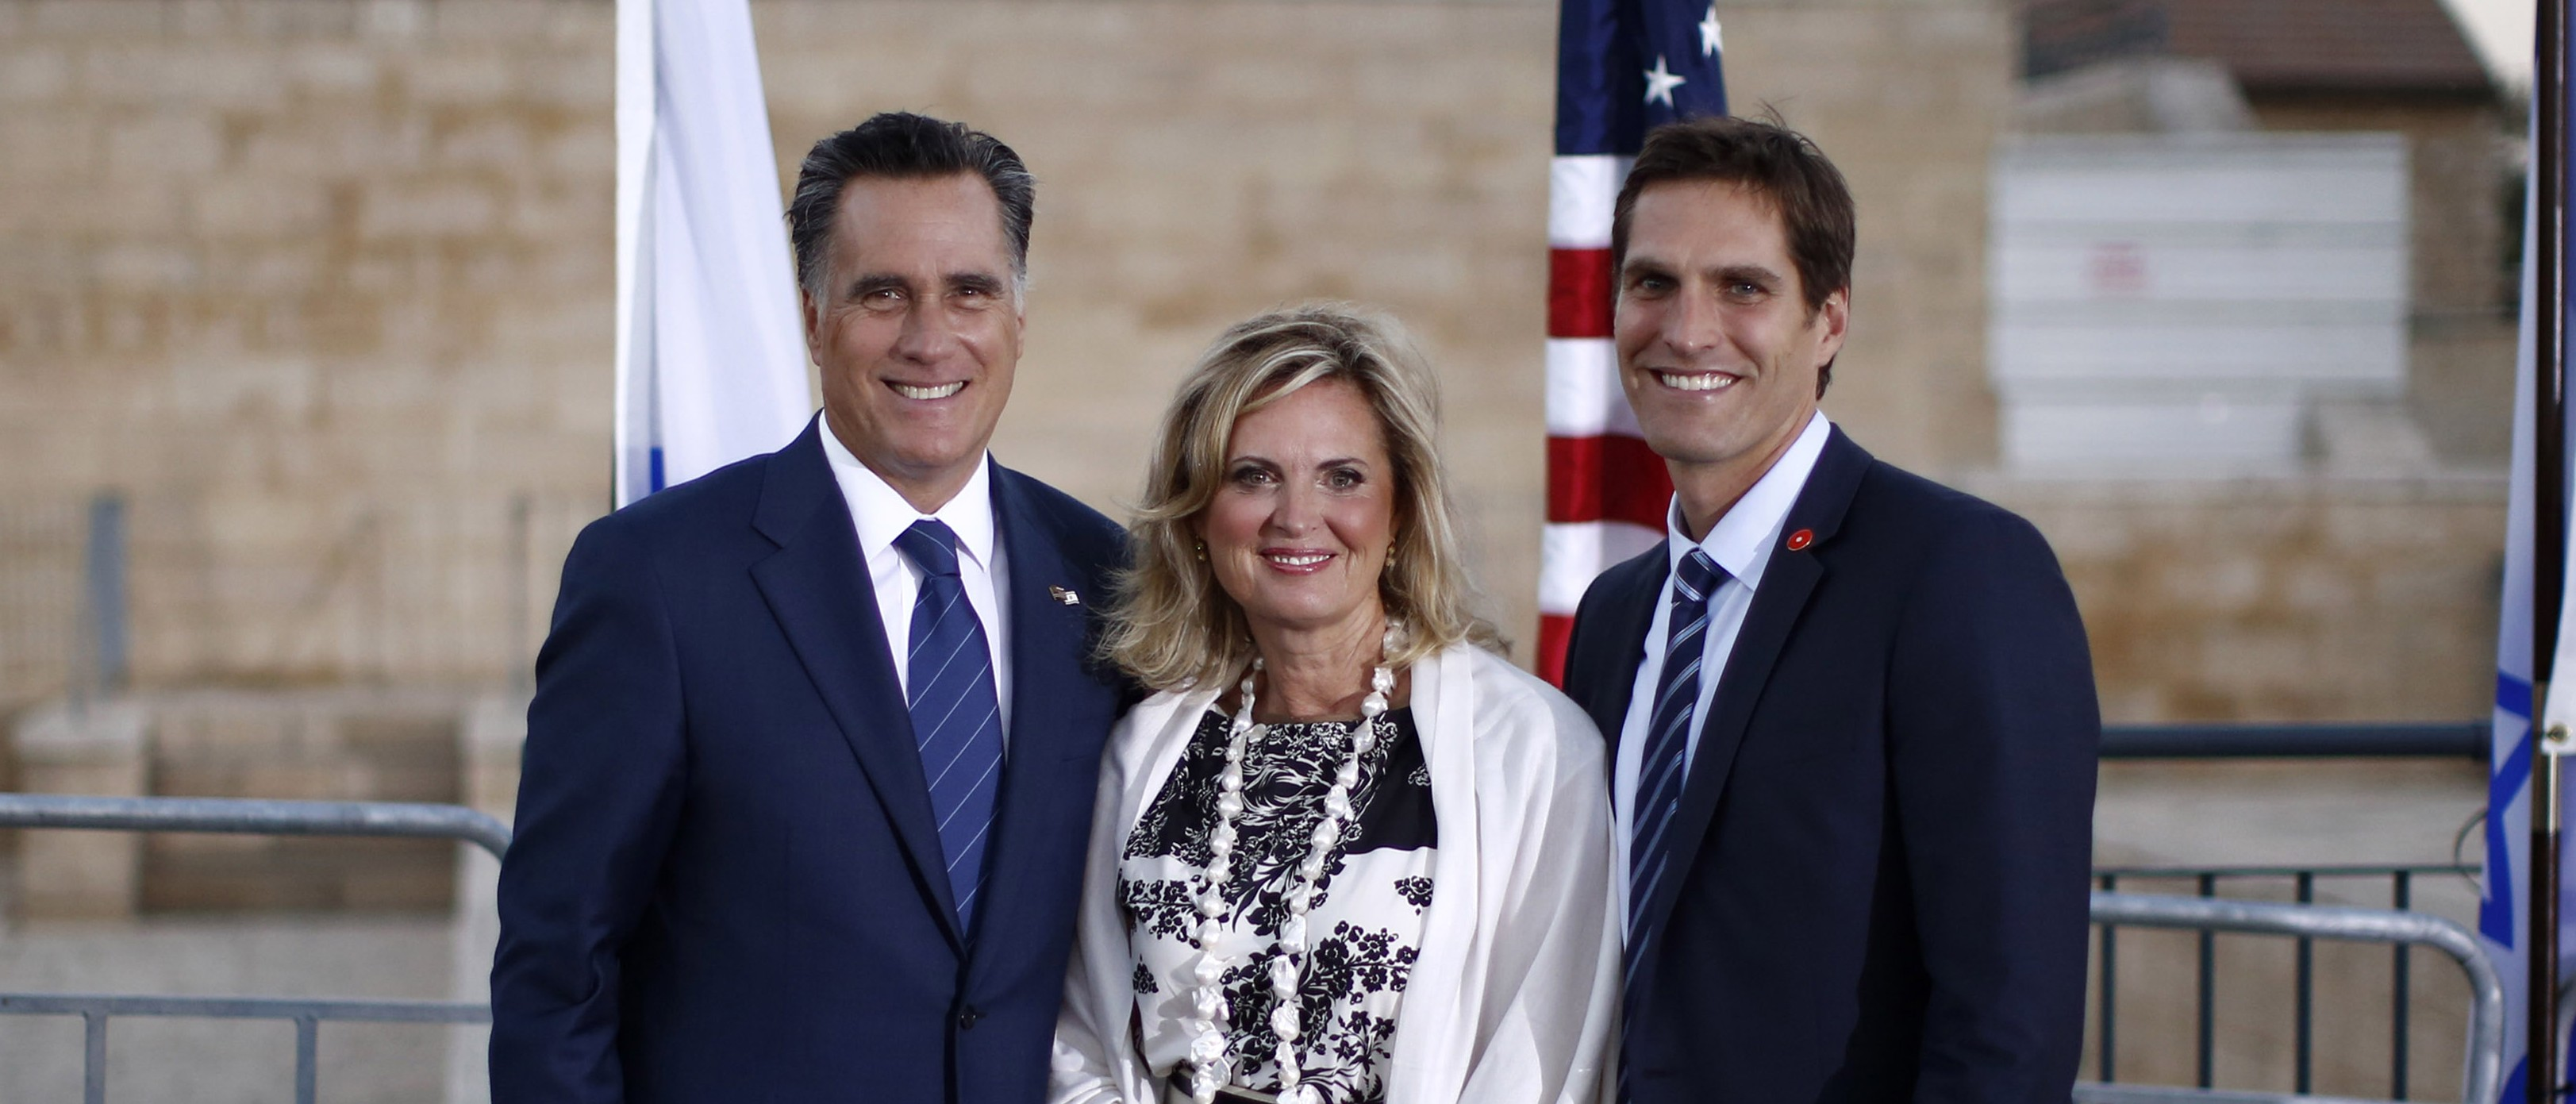 U.S. Republican Presidential candidate Mitt Romney (L) poses with his wife Ann and their son Josh after he delivered foreign policy remarks at Mishkenot Sha'ananim in Jerusalem, July 29, 2012. REUTERS/Jason Reed (JERUSALEM - Tags: POLITICS) - RTR35LKL